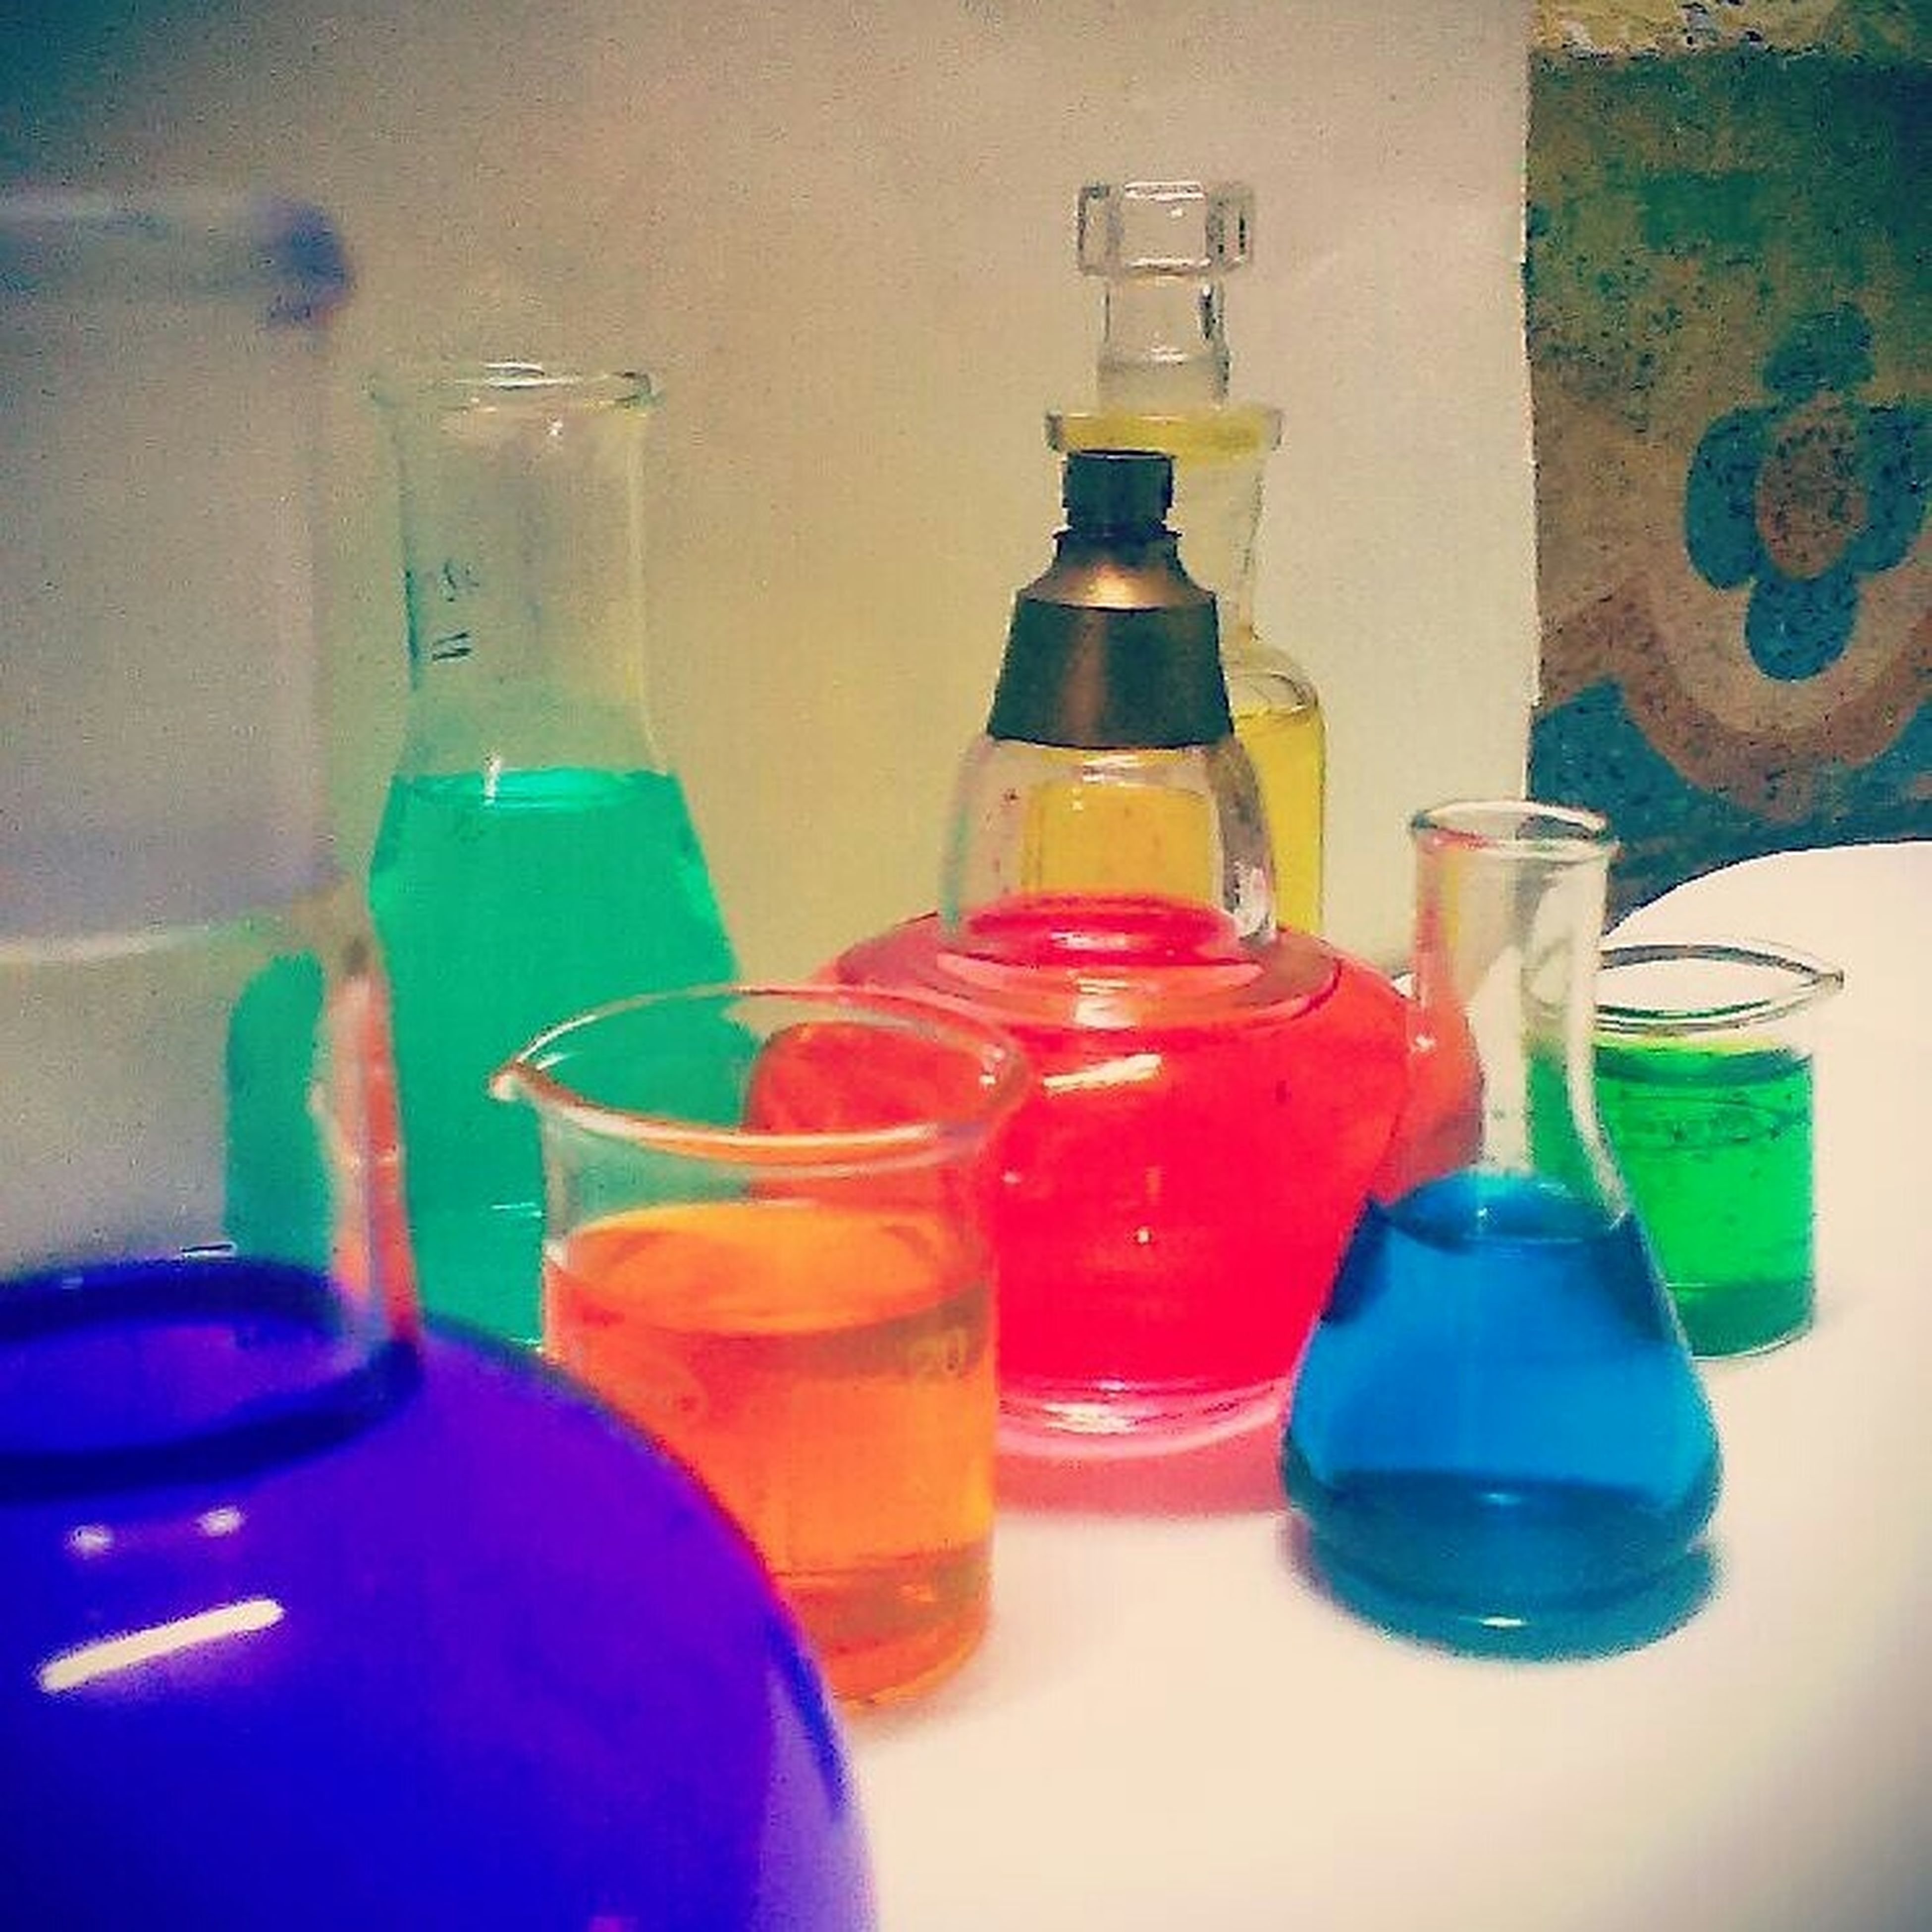 indoors, still life, blue, bottle, multi colored, close-up, table, plastic, variation, glass - material, drink, no people, container, drinking glass, red, green color, refreshment, in a row, empty, transparent